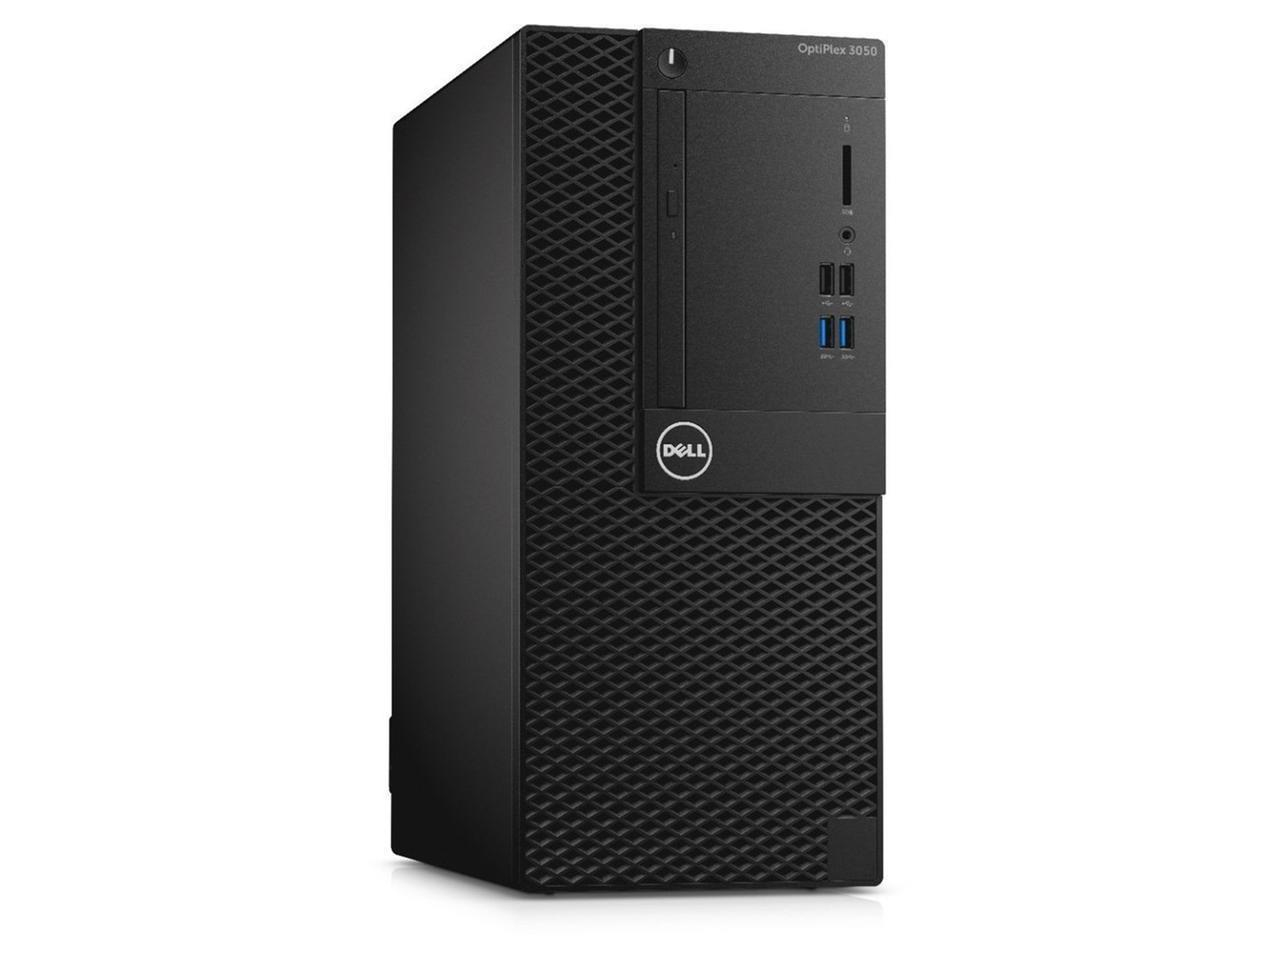 Dell Optiplex 3060 MT Desktop(i5-8500.8GB.1TB)Opt3060MT-i550|8G|1TB